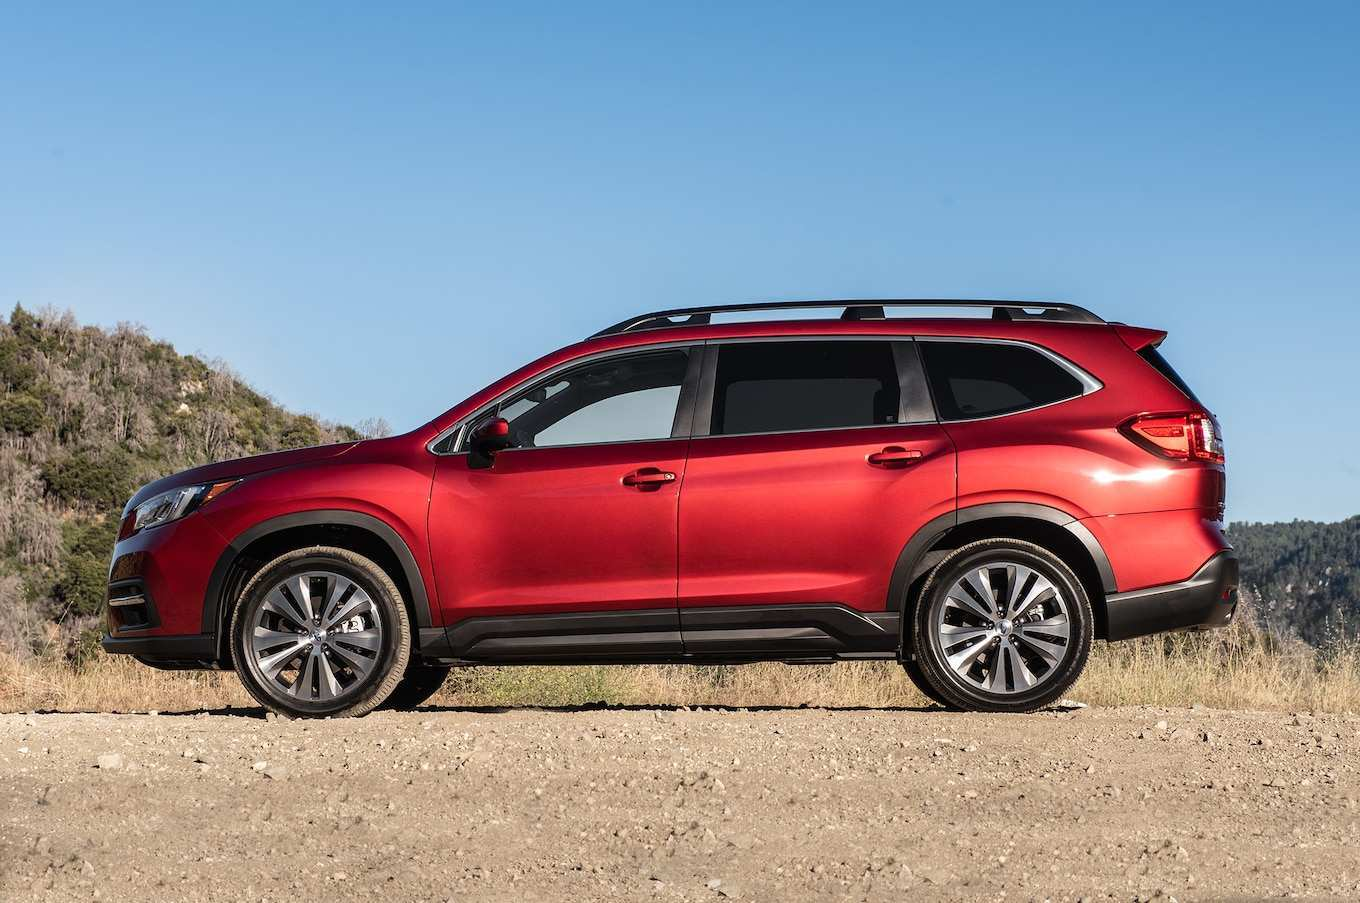 85 The 2019 Subaru Ascent 0 60 Exterior and Interior by 2019 Subaru Ascent 0 60